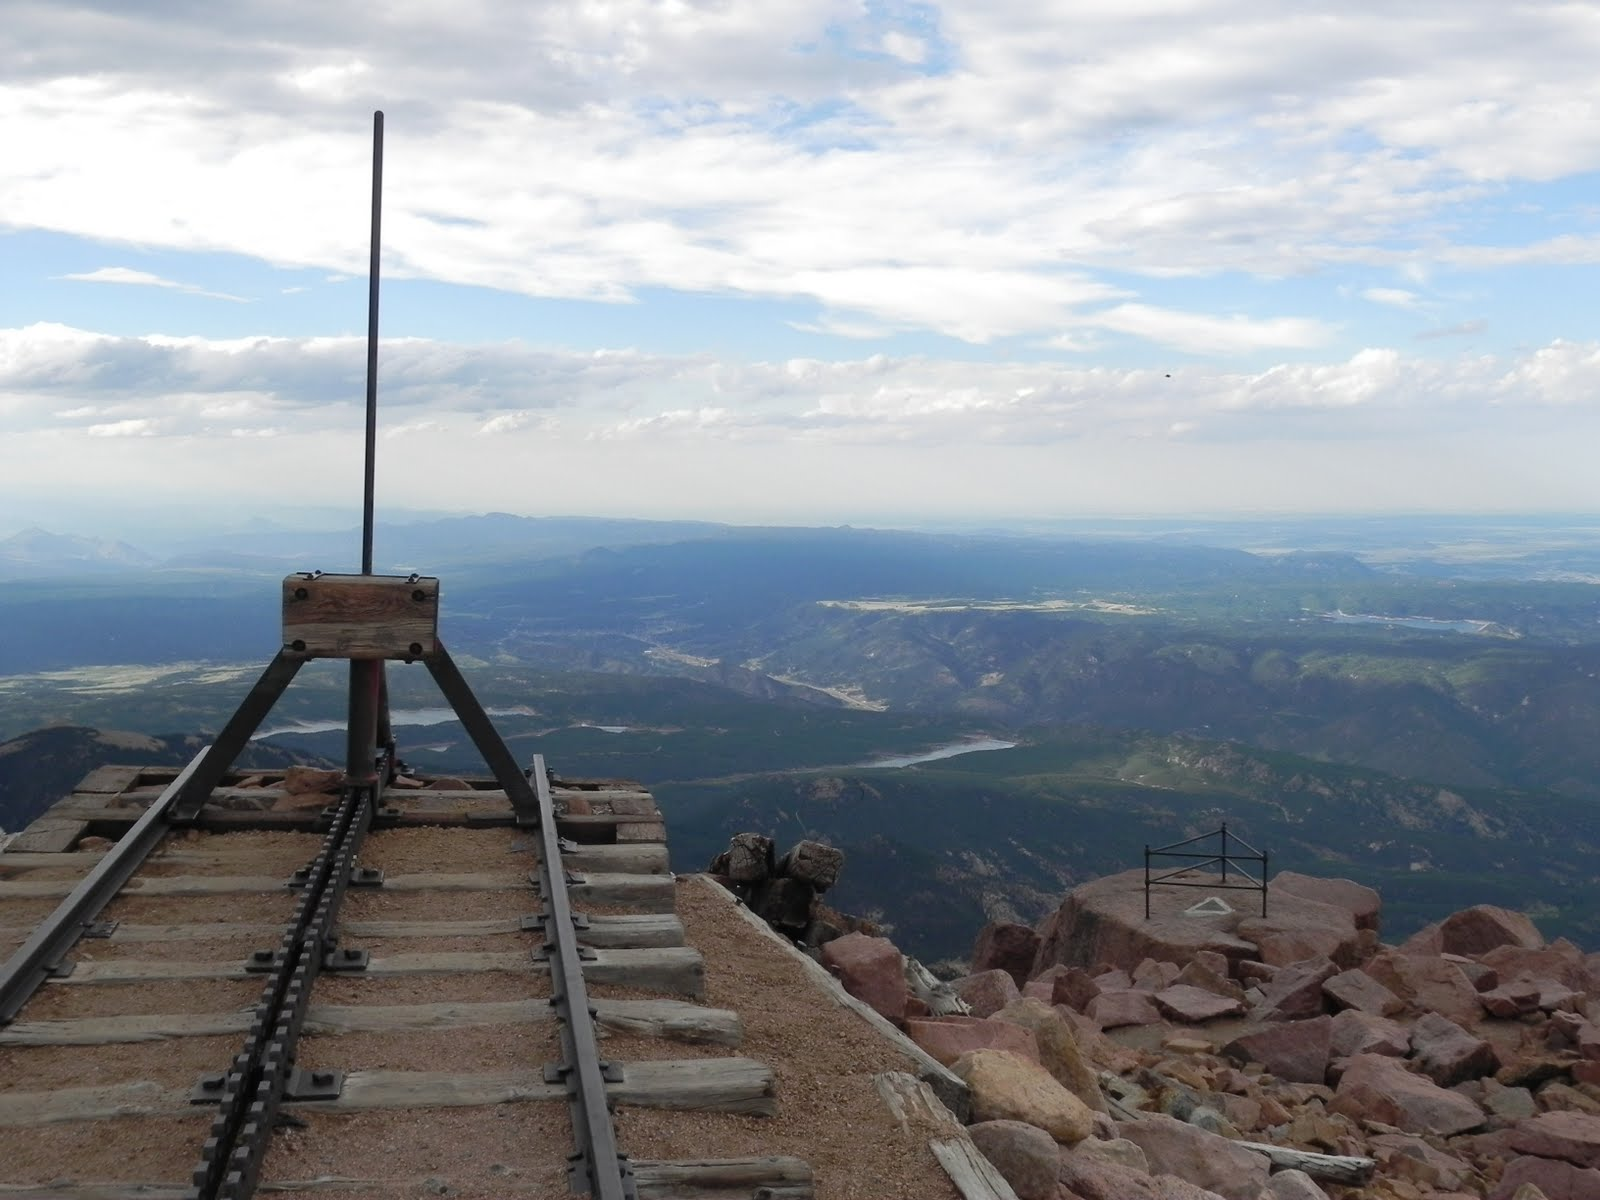 The End Of Cog Railway Almost Seems To Dangle Over Side Pikes Peak At 14 110 Feet Not Only Are You Well Above Tree Line Re Also Past